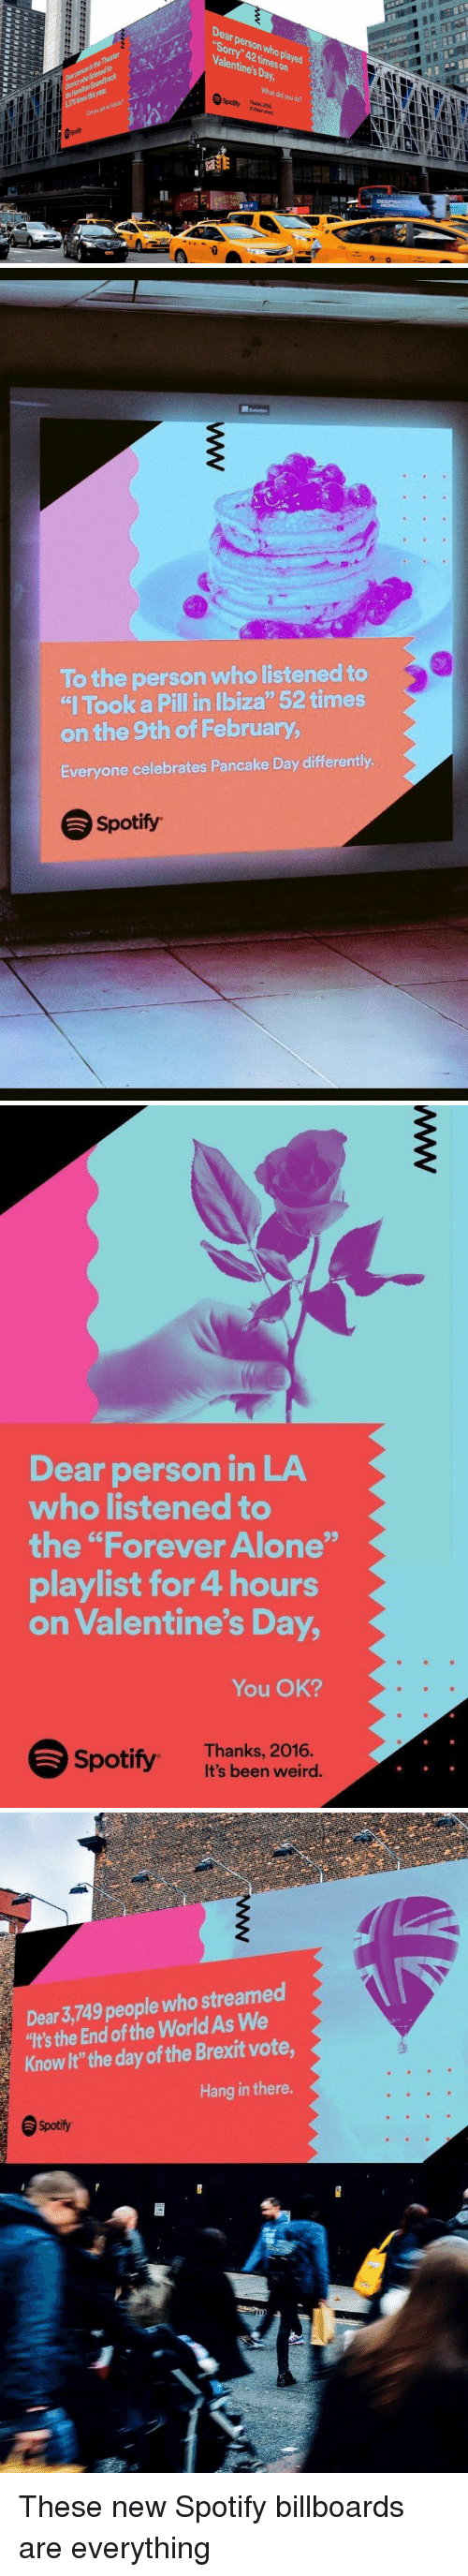 """Billboard, Funny, and Valentine's Day: Kon  Dear person who Valentine's on  Day,  What you did do?  Spotify Thanks 2016.   To the person who listened to  """"I Took a Pillin Ibiza"""" 52 times  on the 9th of February,  Everyone celebrates Pancake Day differently.  Spotify   Dear person in LA  who listened to  the """"Forever Alone""""  playlist for 4 hours  on Valentine's Day,  You OK?  Spotify. Thanks, 2016  It's been weird.   Dear 3,749 people who streamed  """"It's the End of the World As We  Knowlt""""the day ofthe Brexit vote,  Hang in there.  Spotify These new Spotify billboards are everything"""